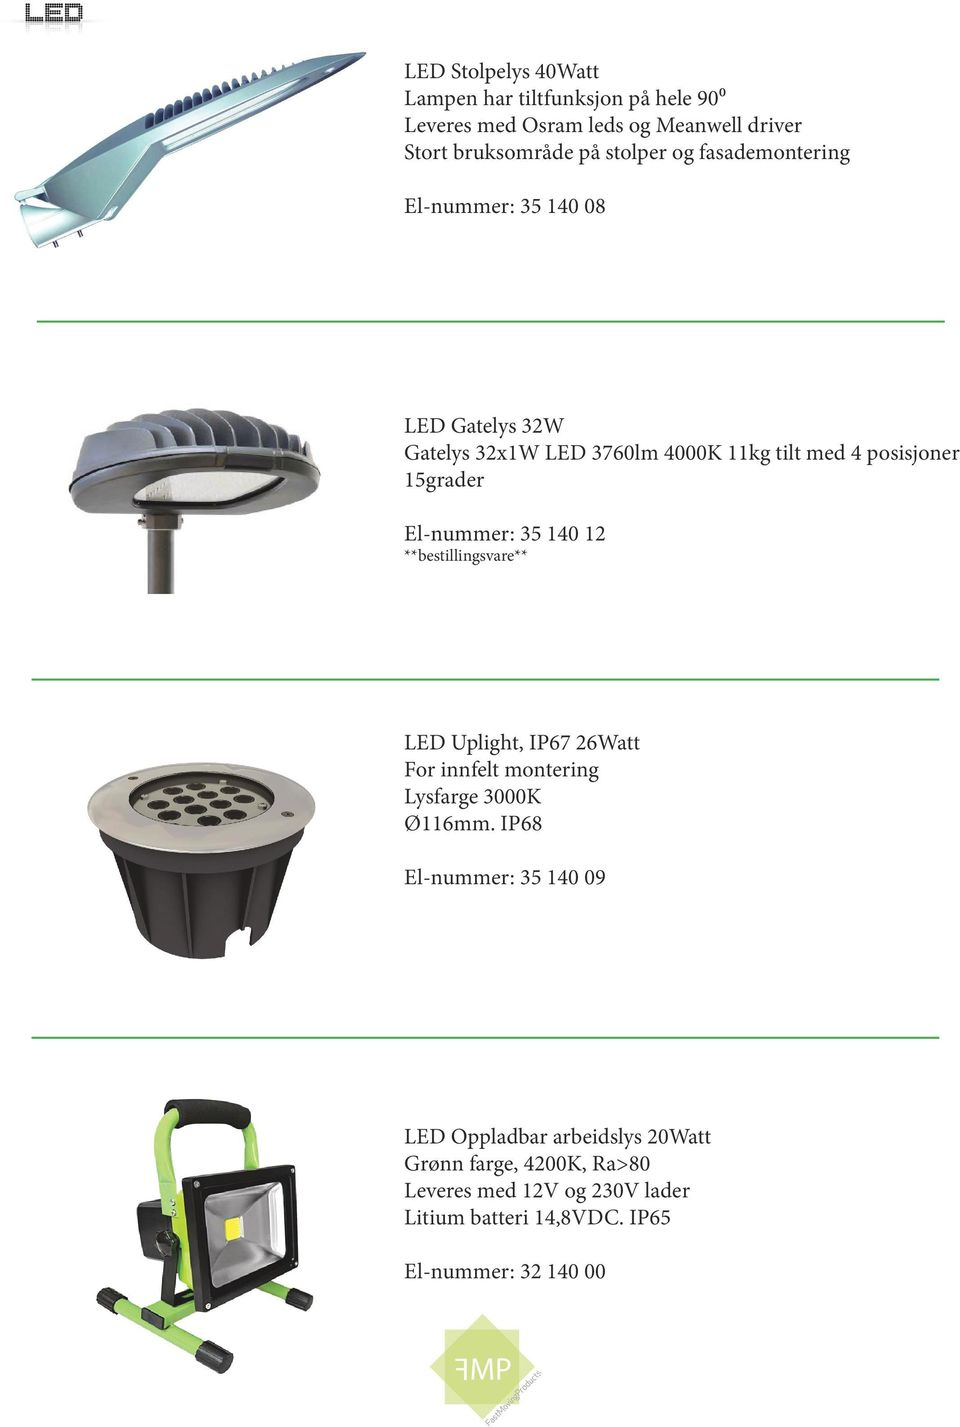 15grader El-nummer: 35 140 12 LED Uplight, IP67 26Watt For innfelt montering Lysfarge 3000K Ø116mm.